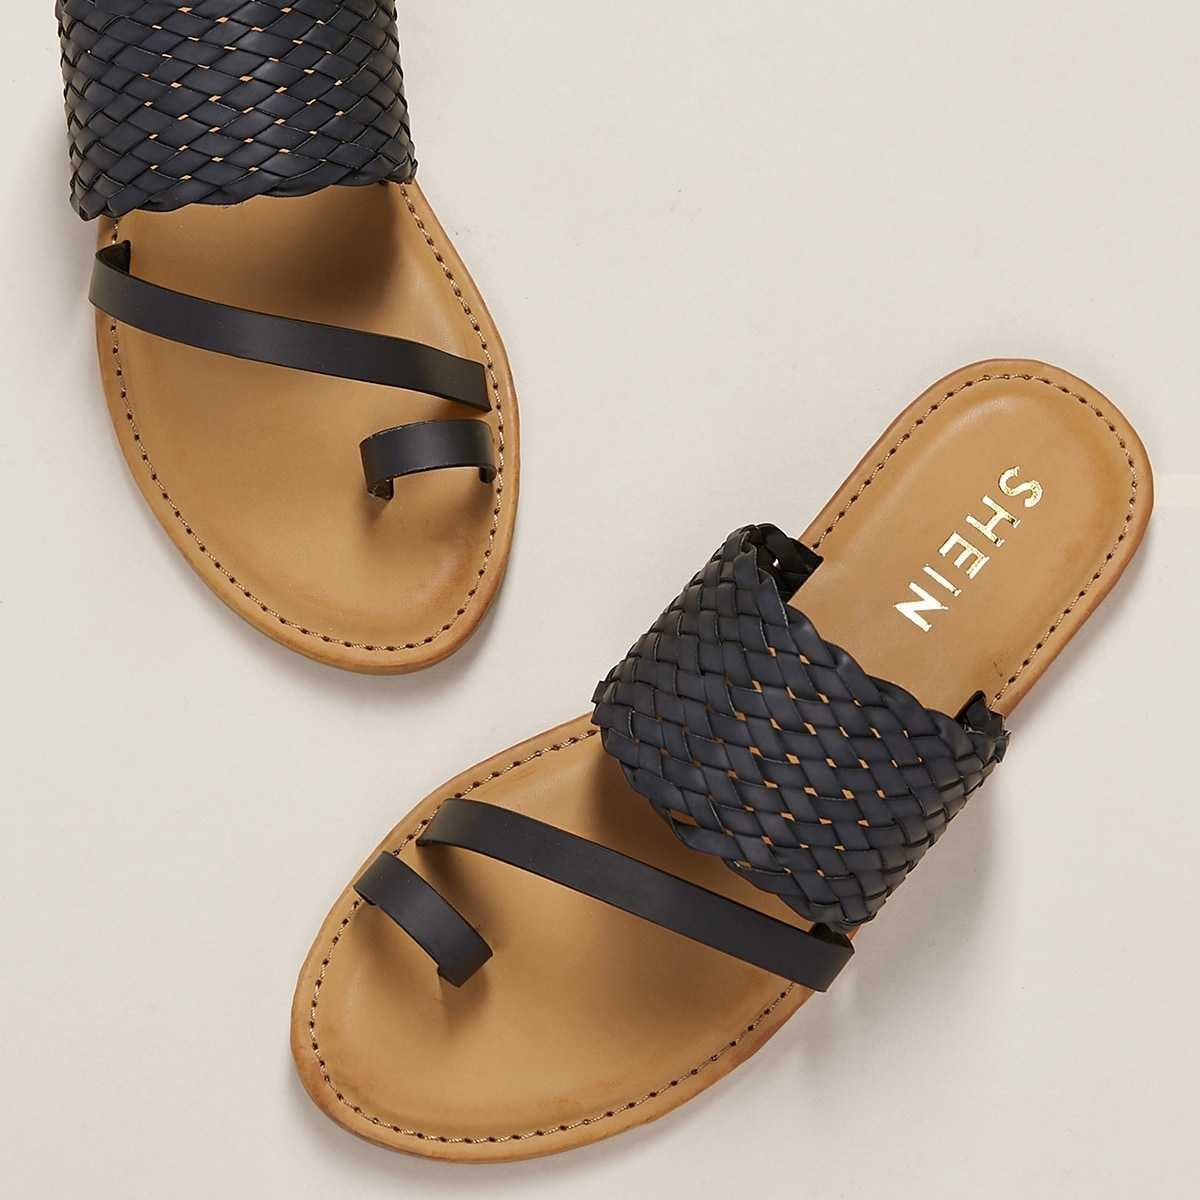 Wide Woven Band Toe Loop Flat Slide Sandals in Black by ROMWE on GOOFASH